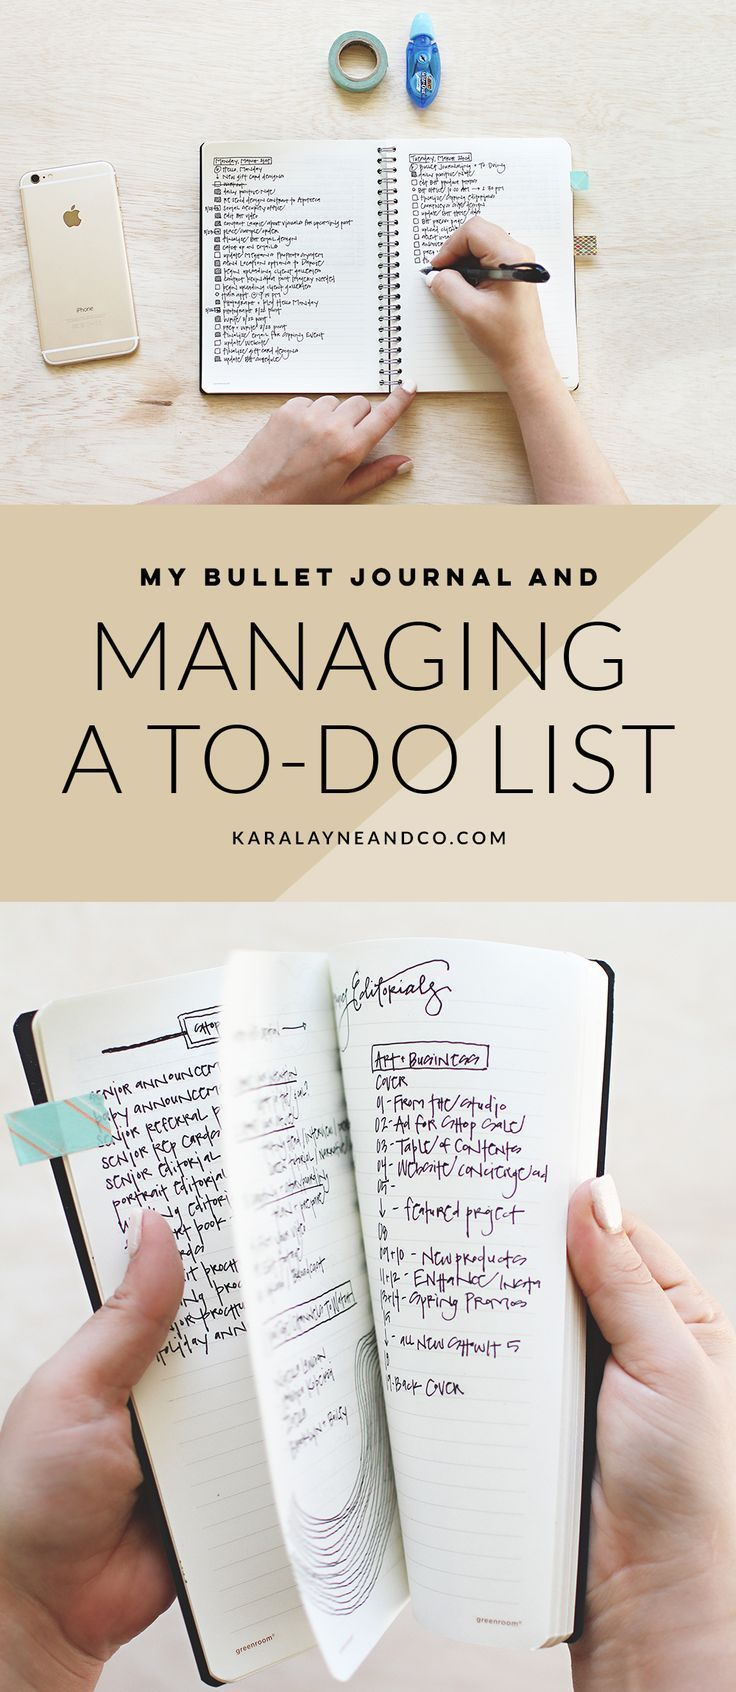 Her bullet journal and managing a to-do list | #Organization #BulletJournal... This article made my day. Found the perfect inspiration to finally start a BuJo. #simplebujo